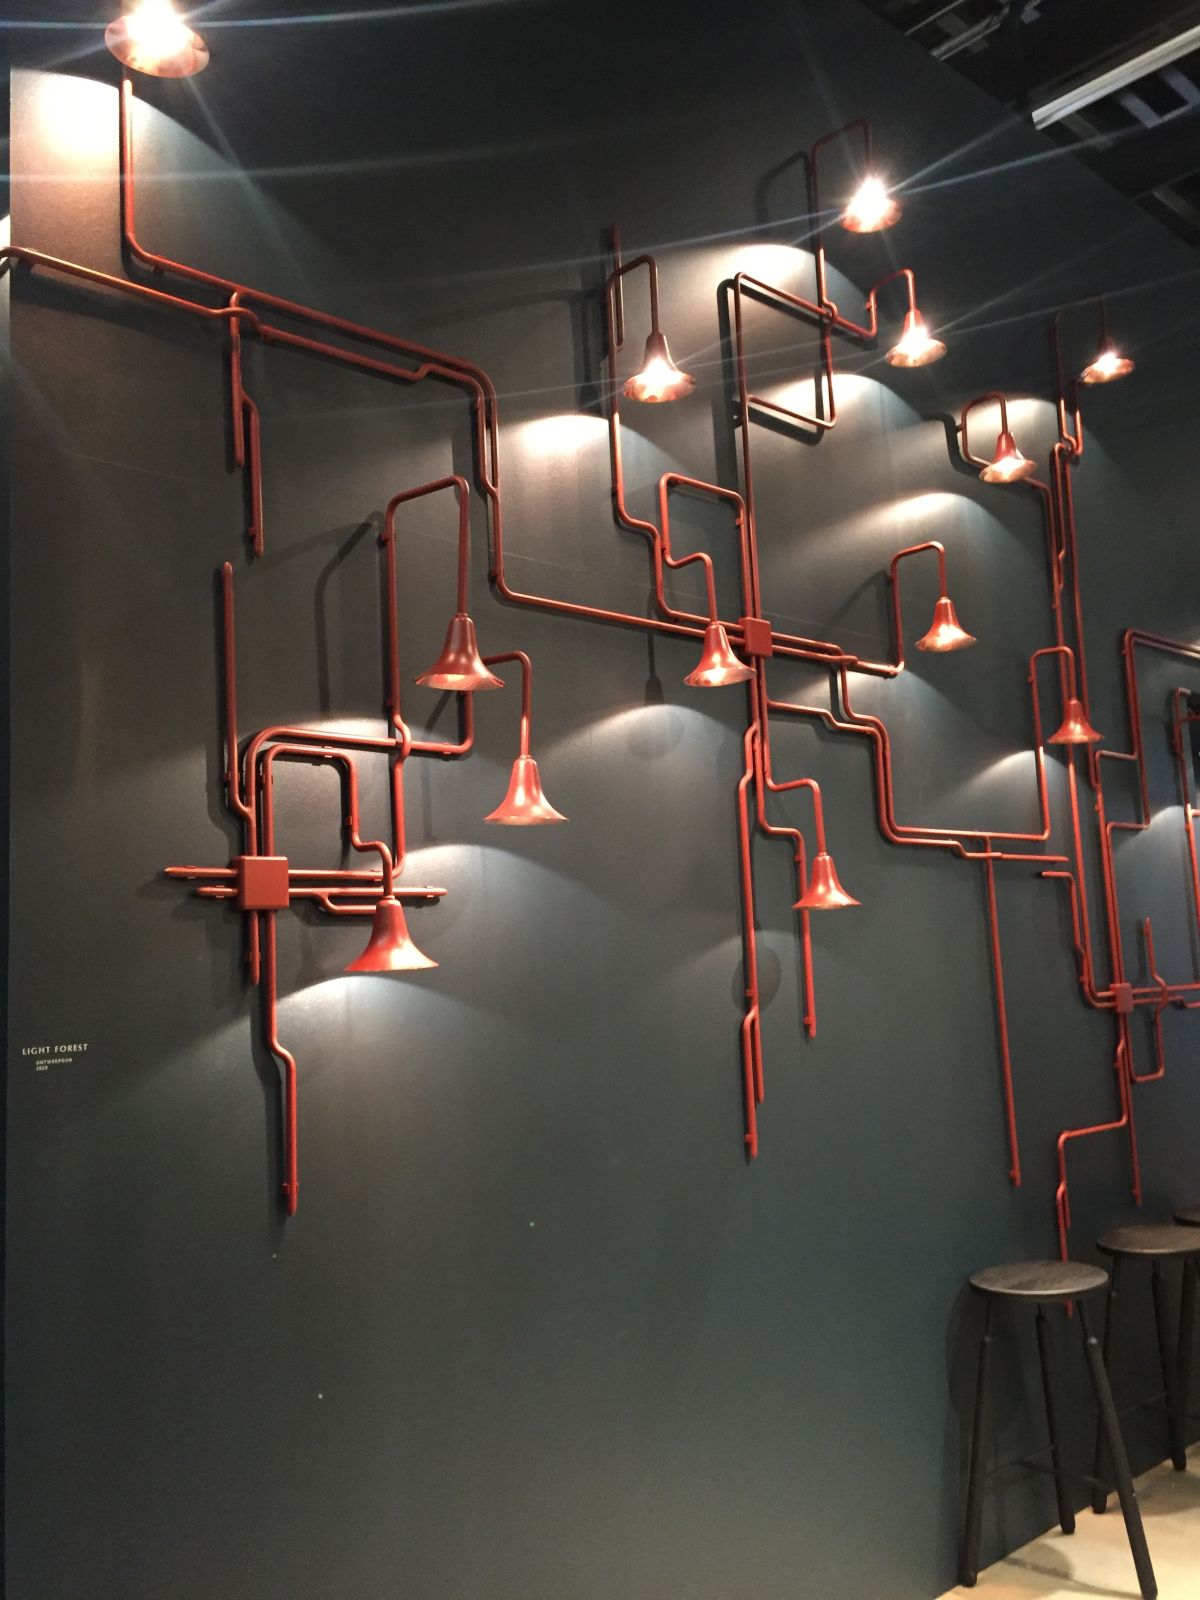 Black wall and red pipes lighting fixtures